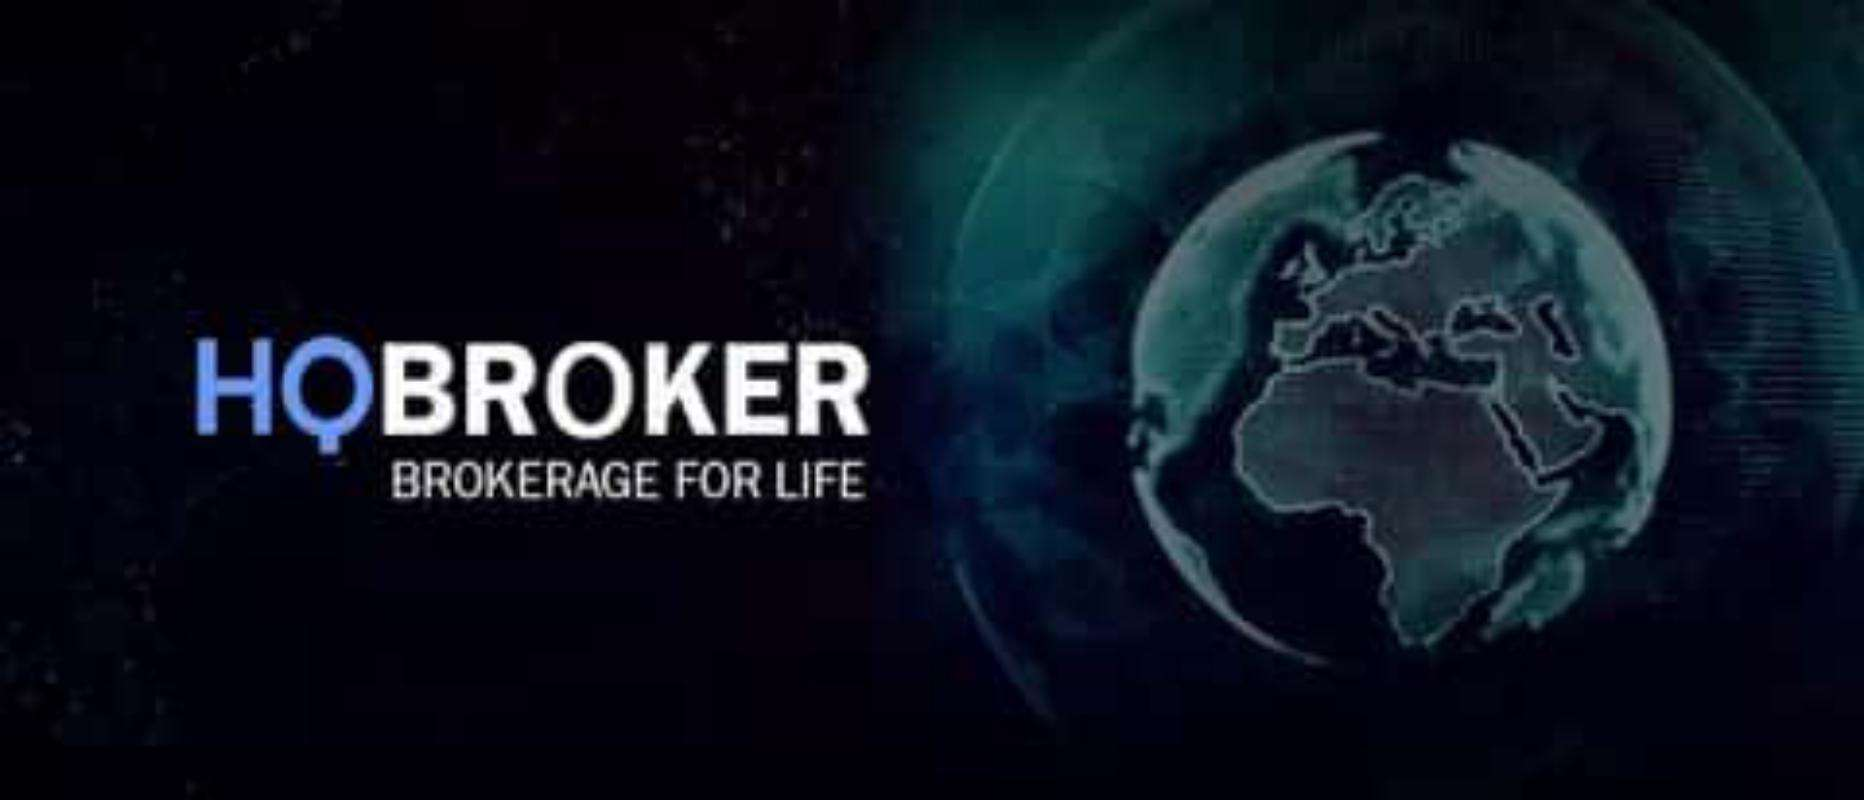 Broker review by H\'s BROKER